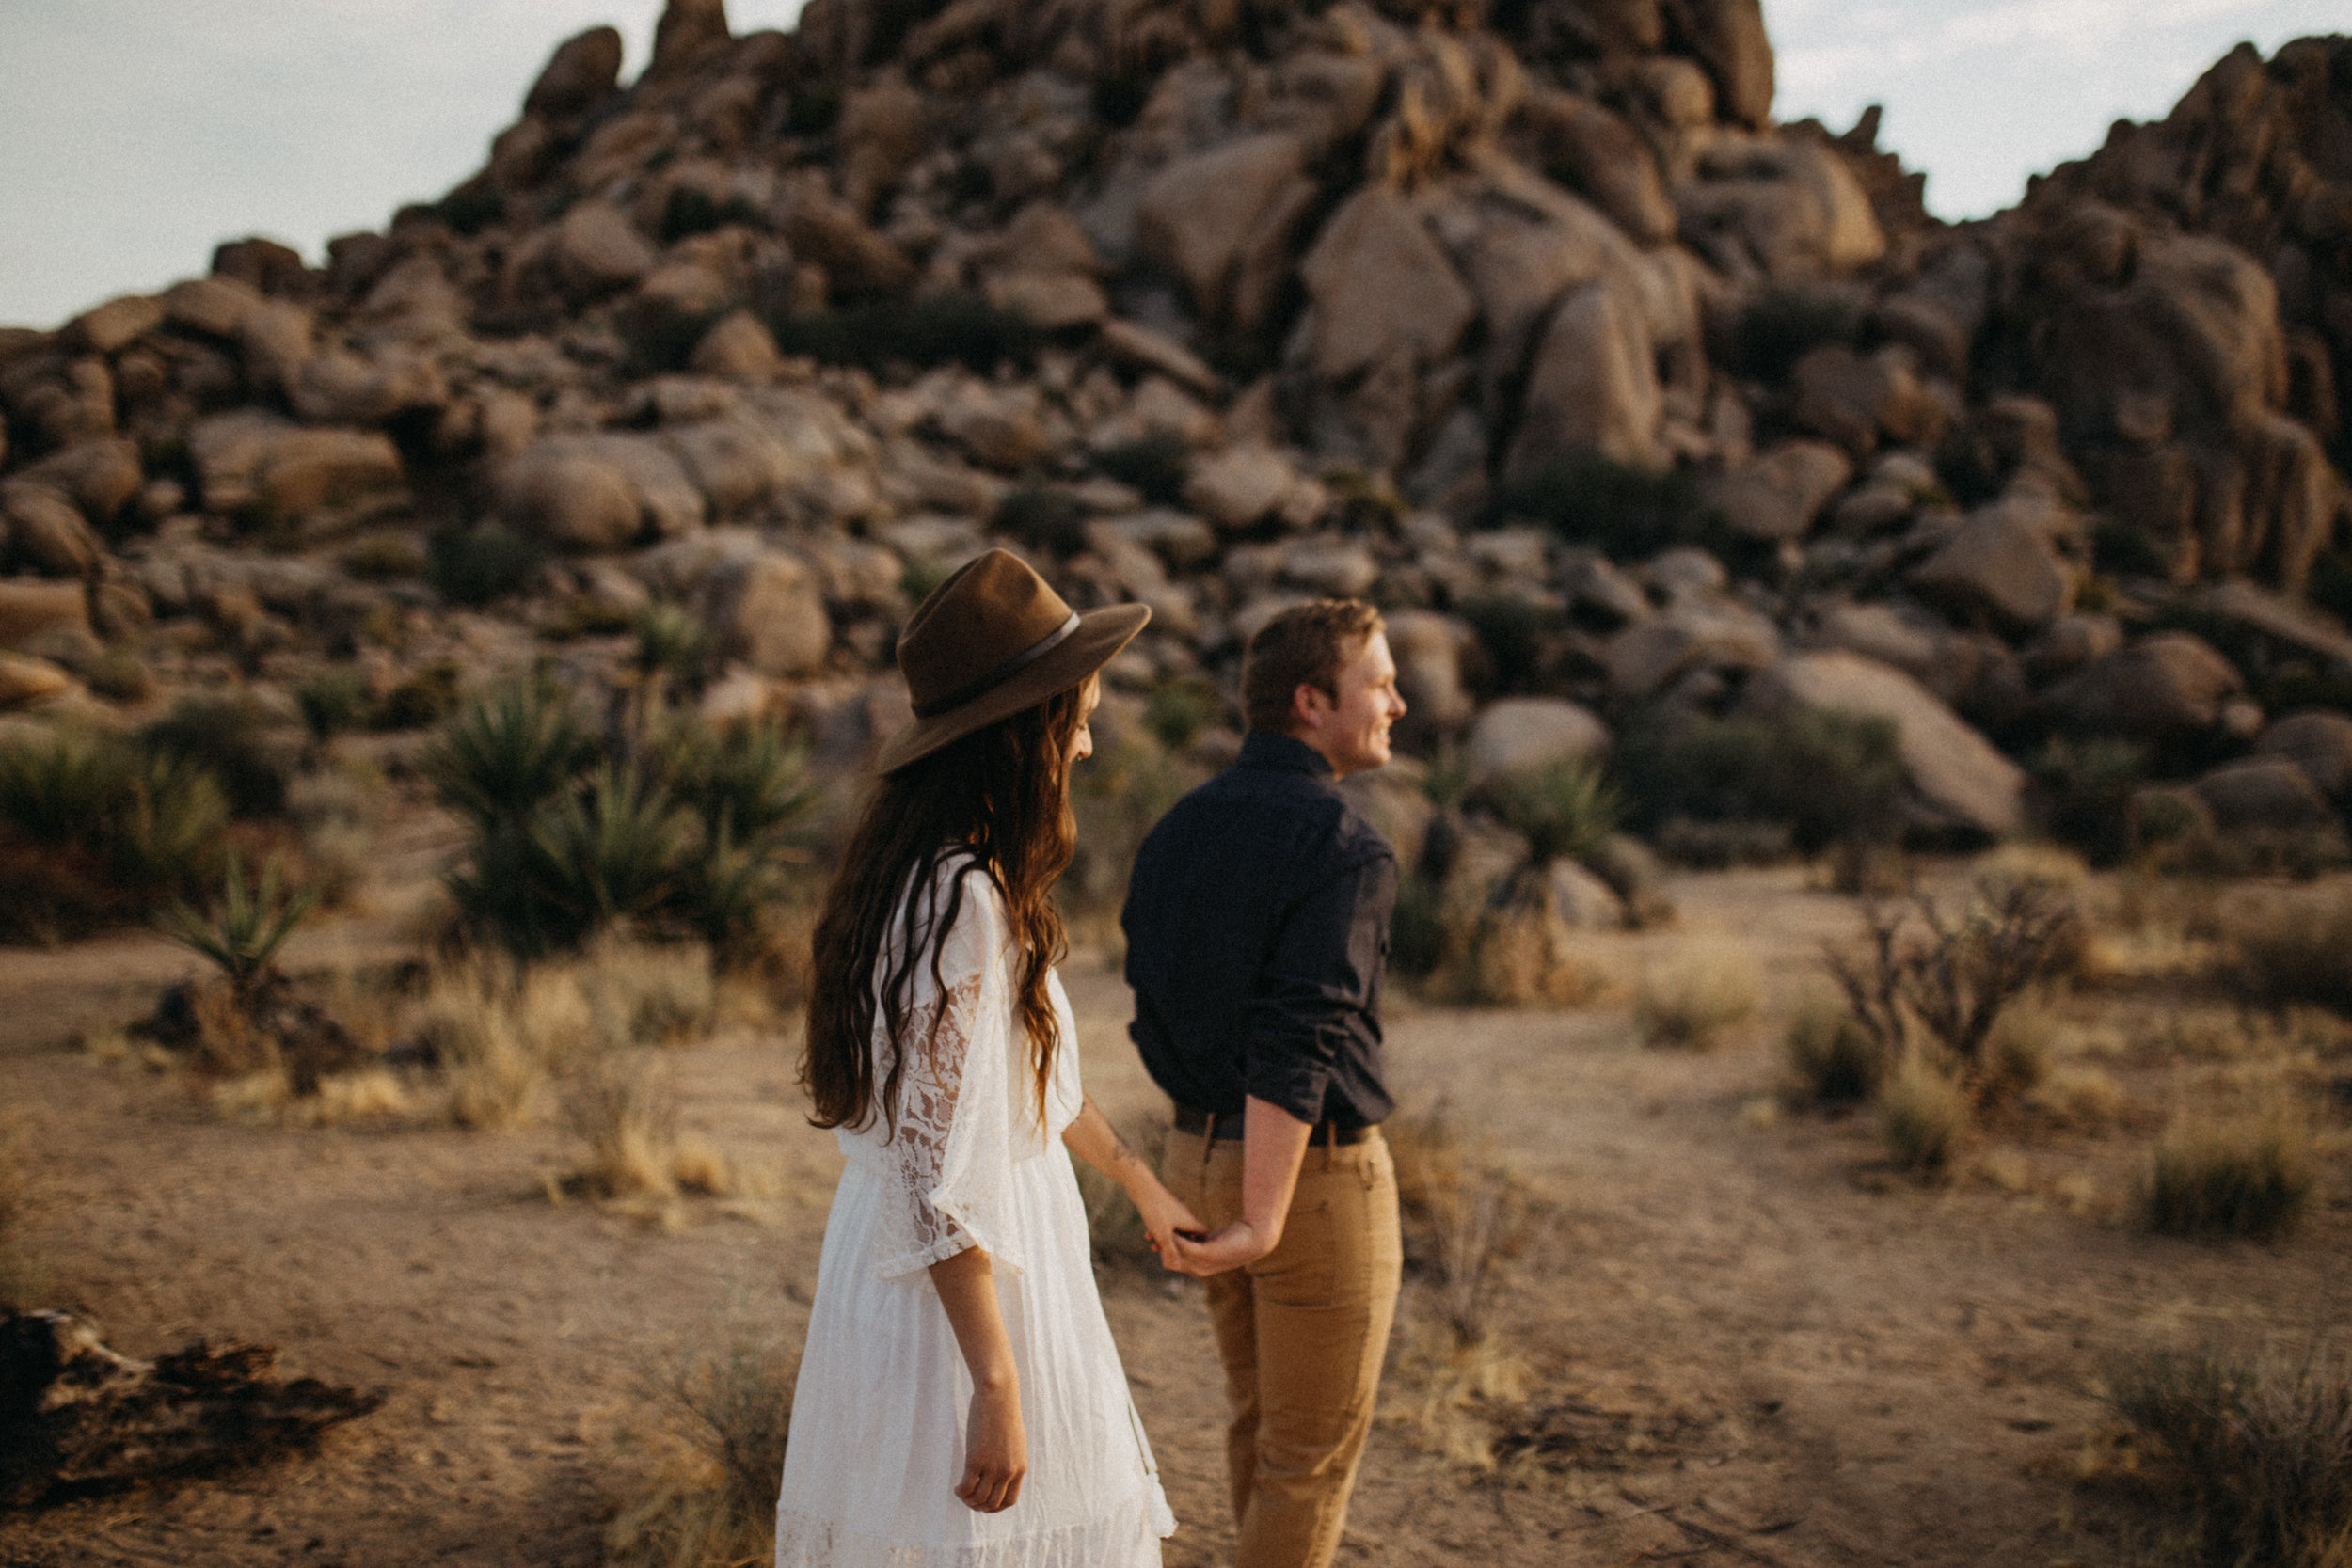 Payton Marie Photography Oklahoma Wedding Elopement Travel Adventure Photographer-103.jpg